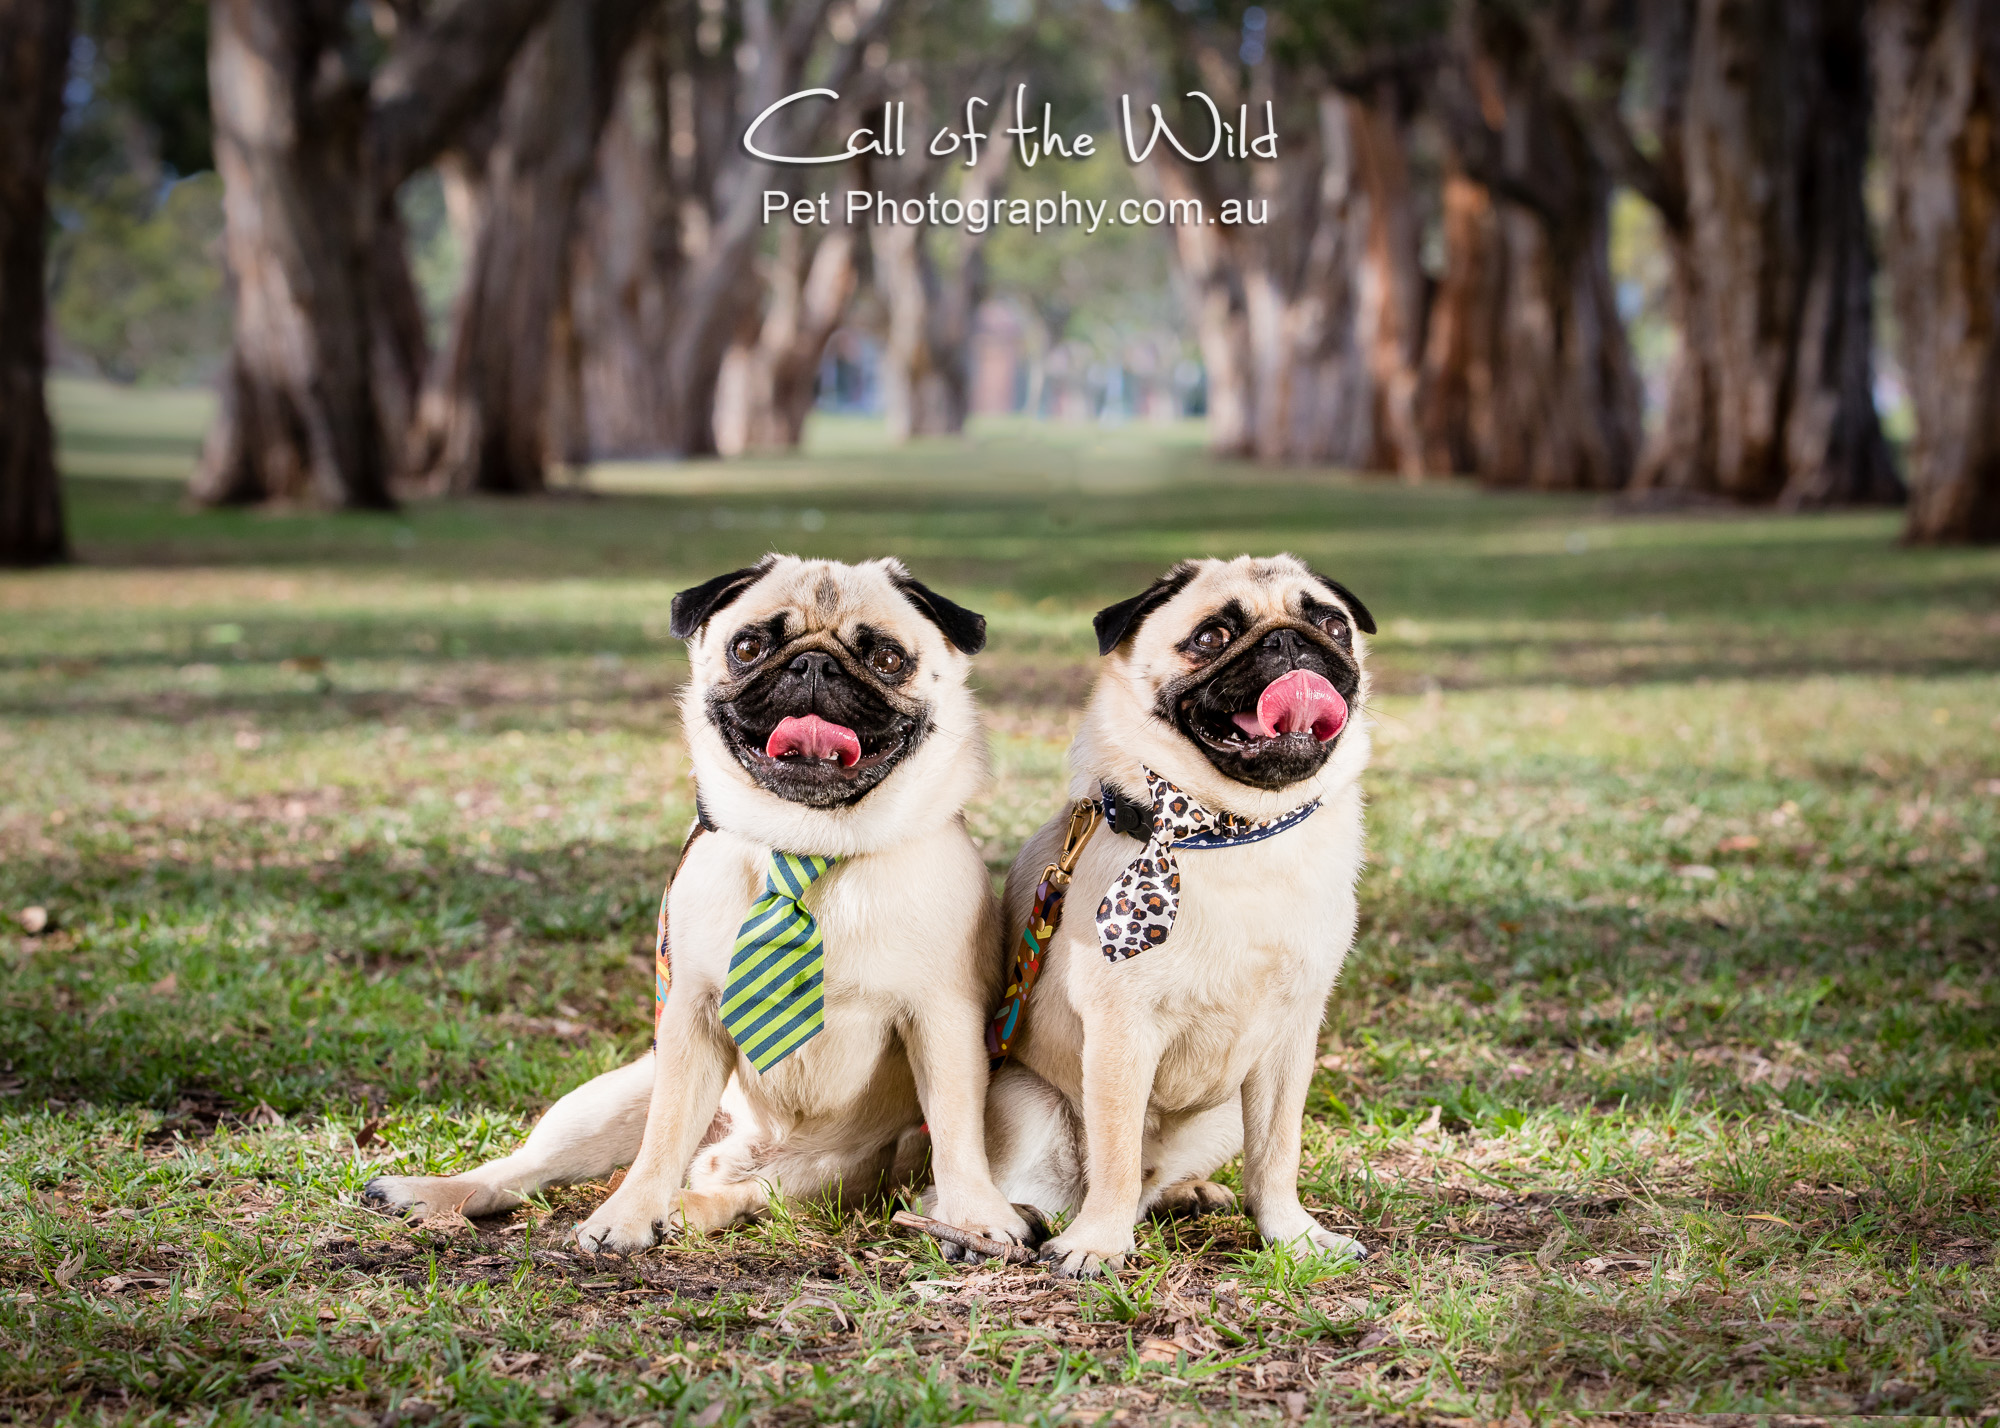 @MrBiscuitthepug the Instagram stars